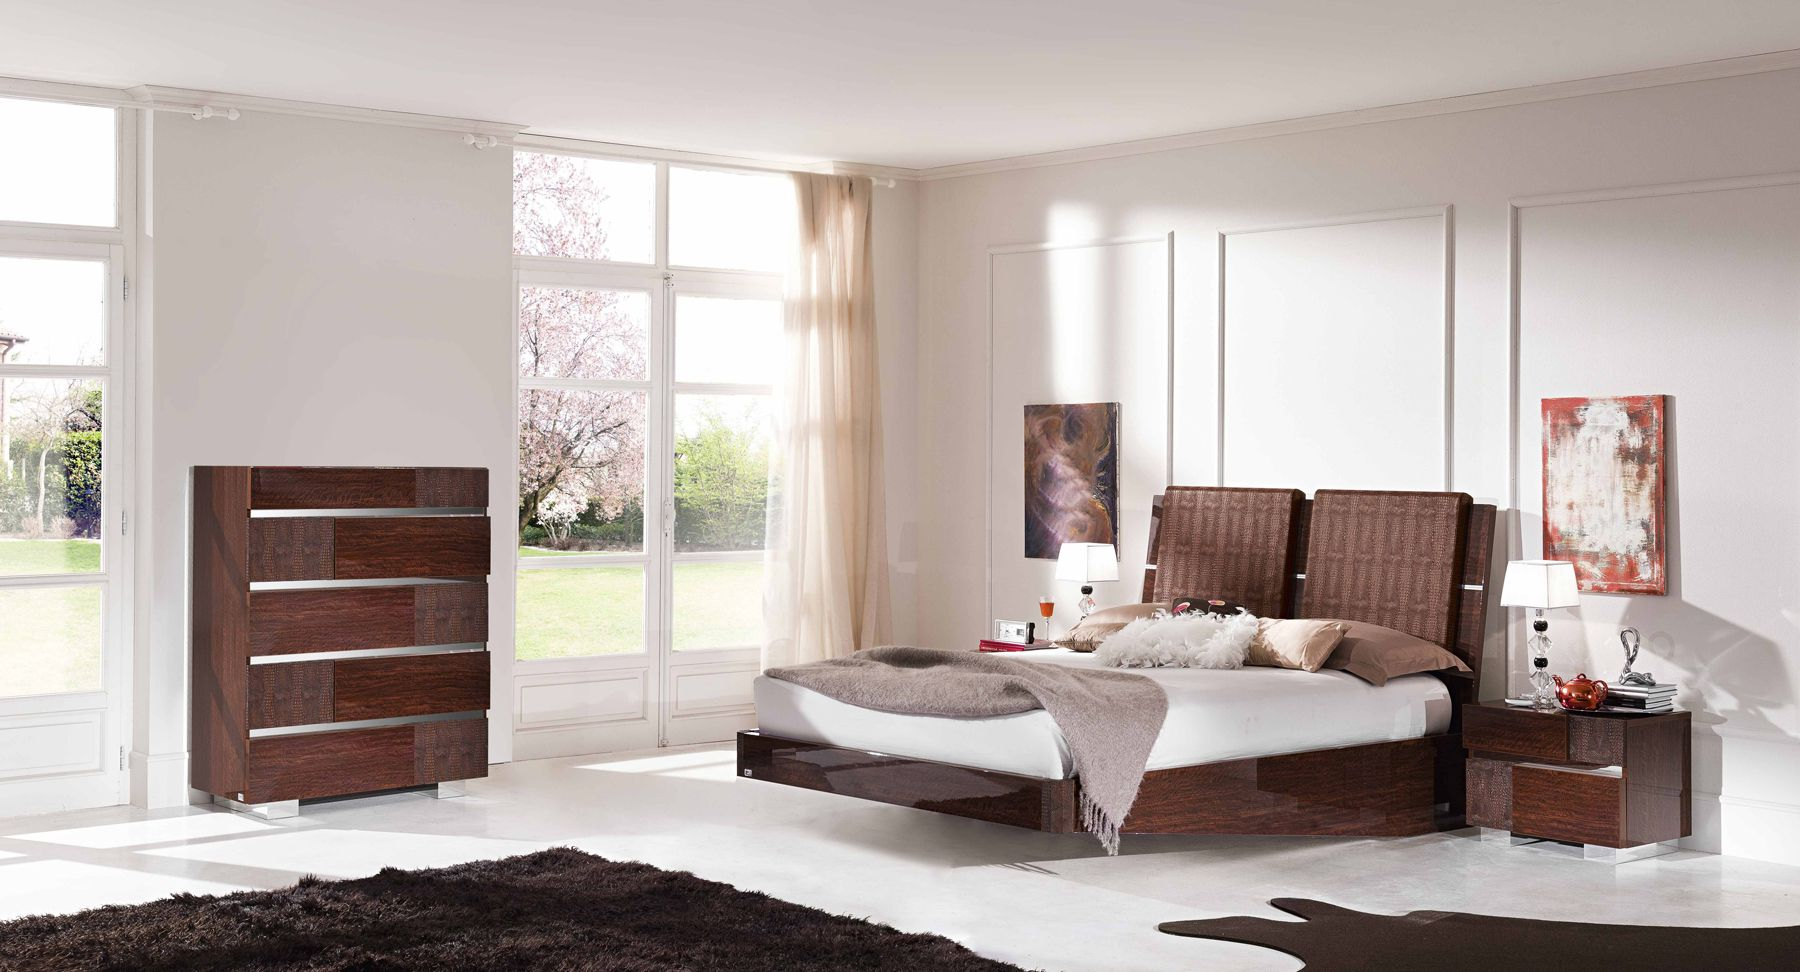 Genial Choose Wicker Headboard And Floating Bed Near Glossy Brown Dressers As Modern  Bedroom Furniture